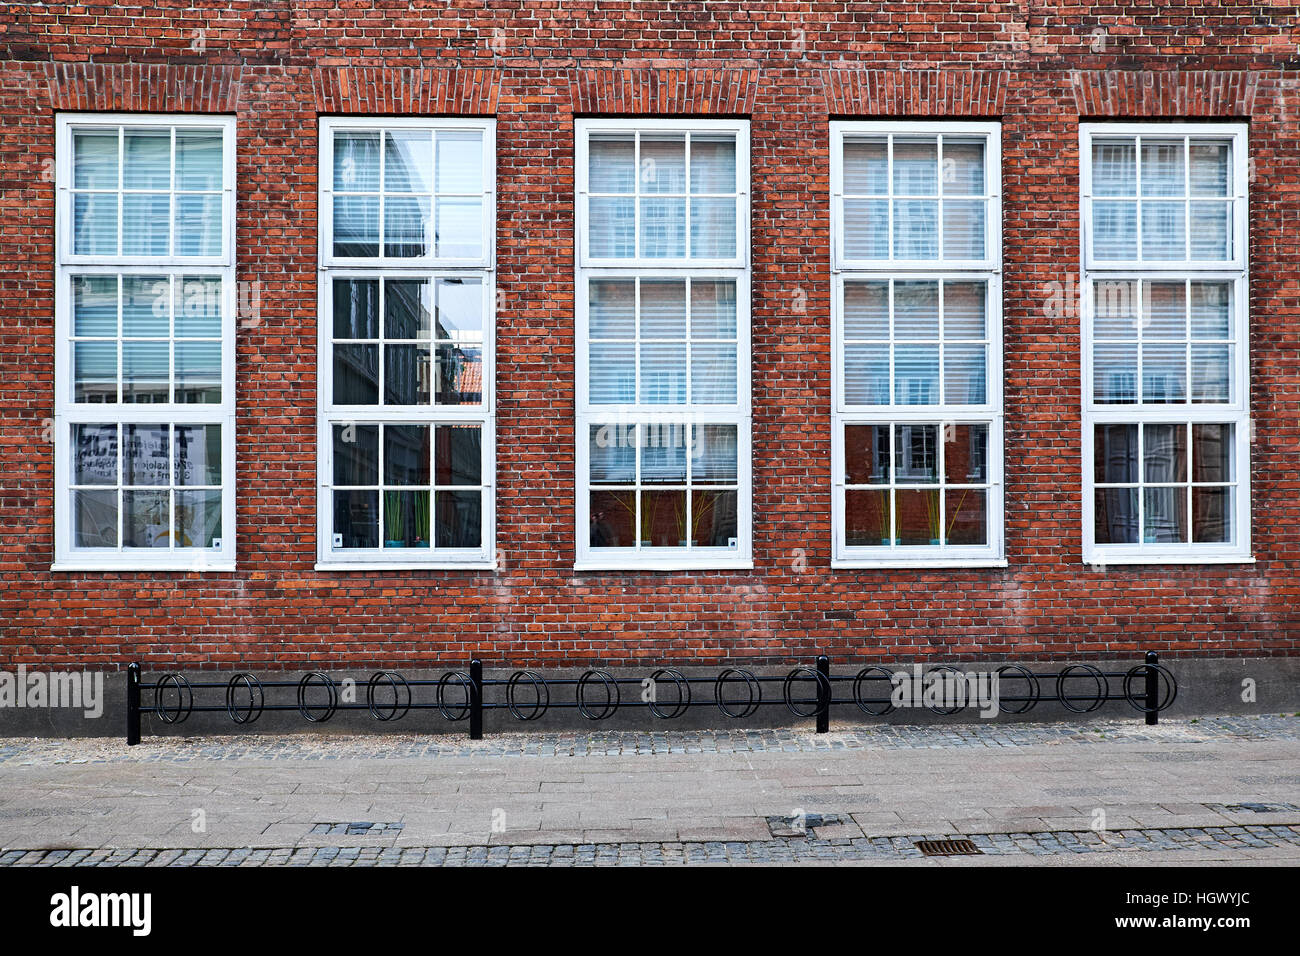 five tall white painted awning windows in a red brick facade facing the street, with a pavement and bicycle stands - Stock Image